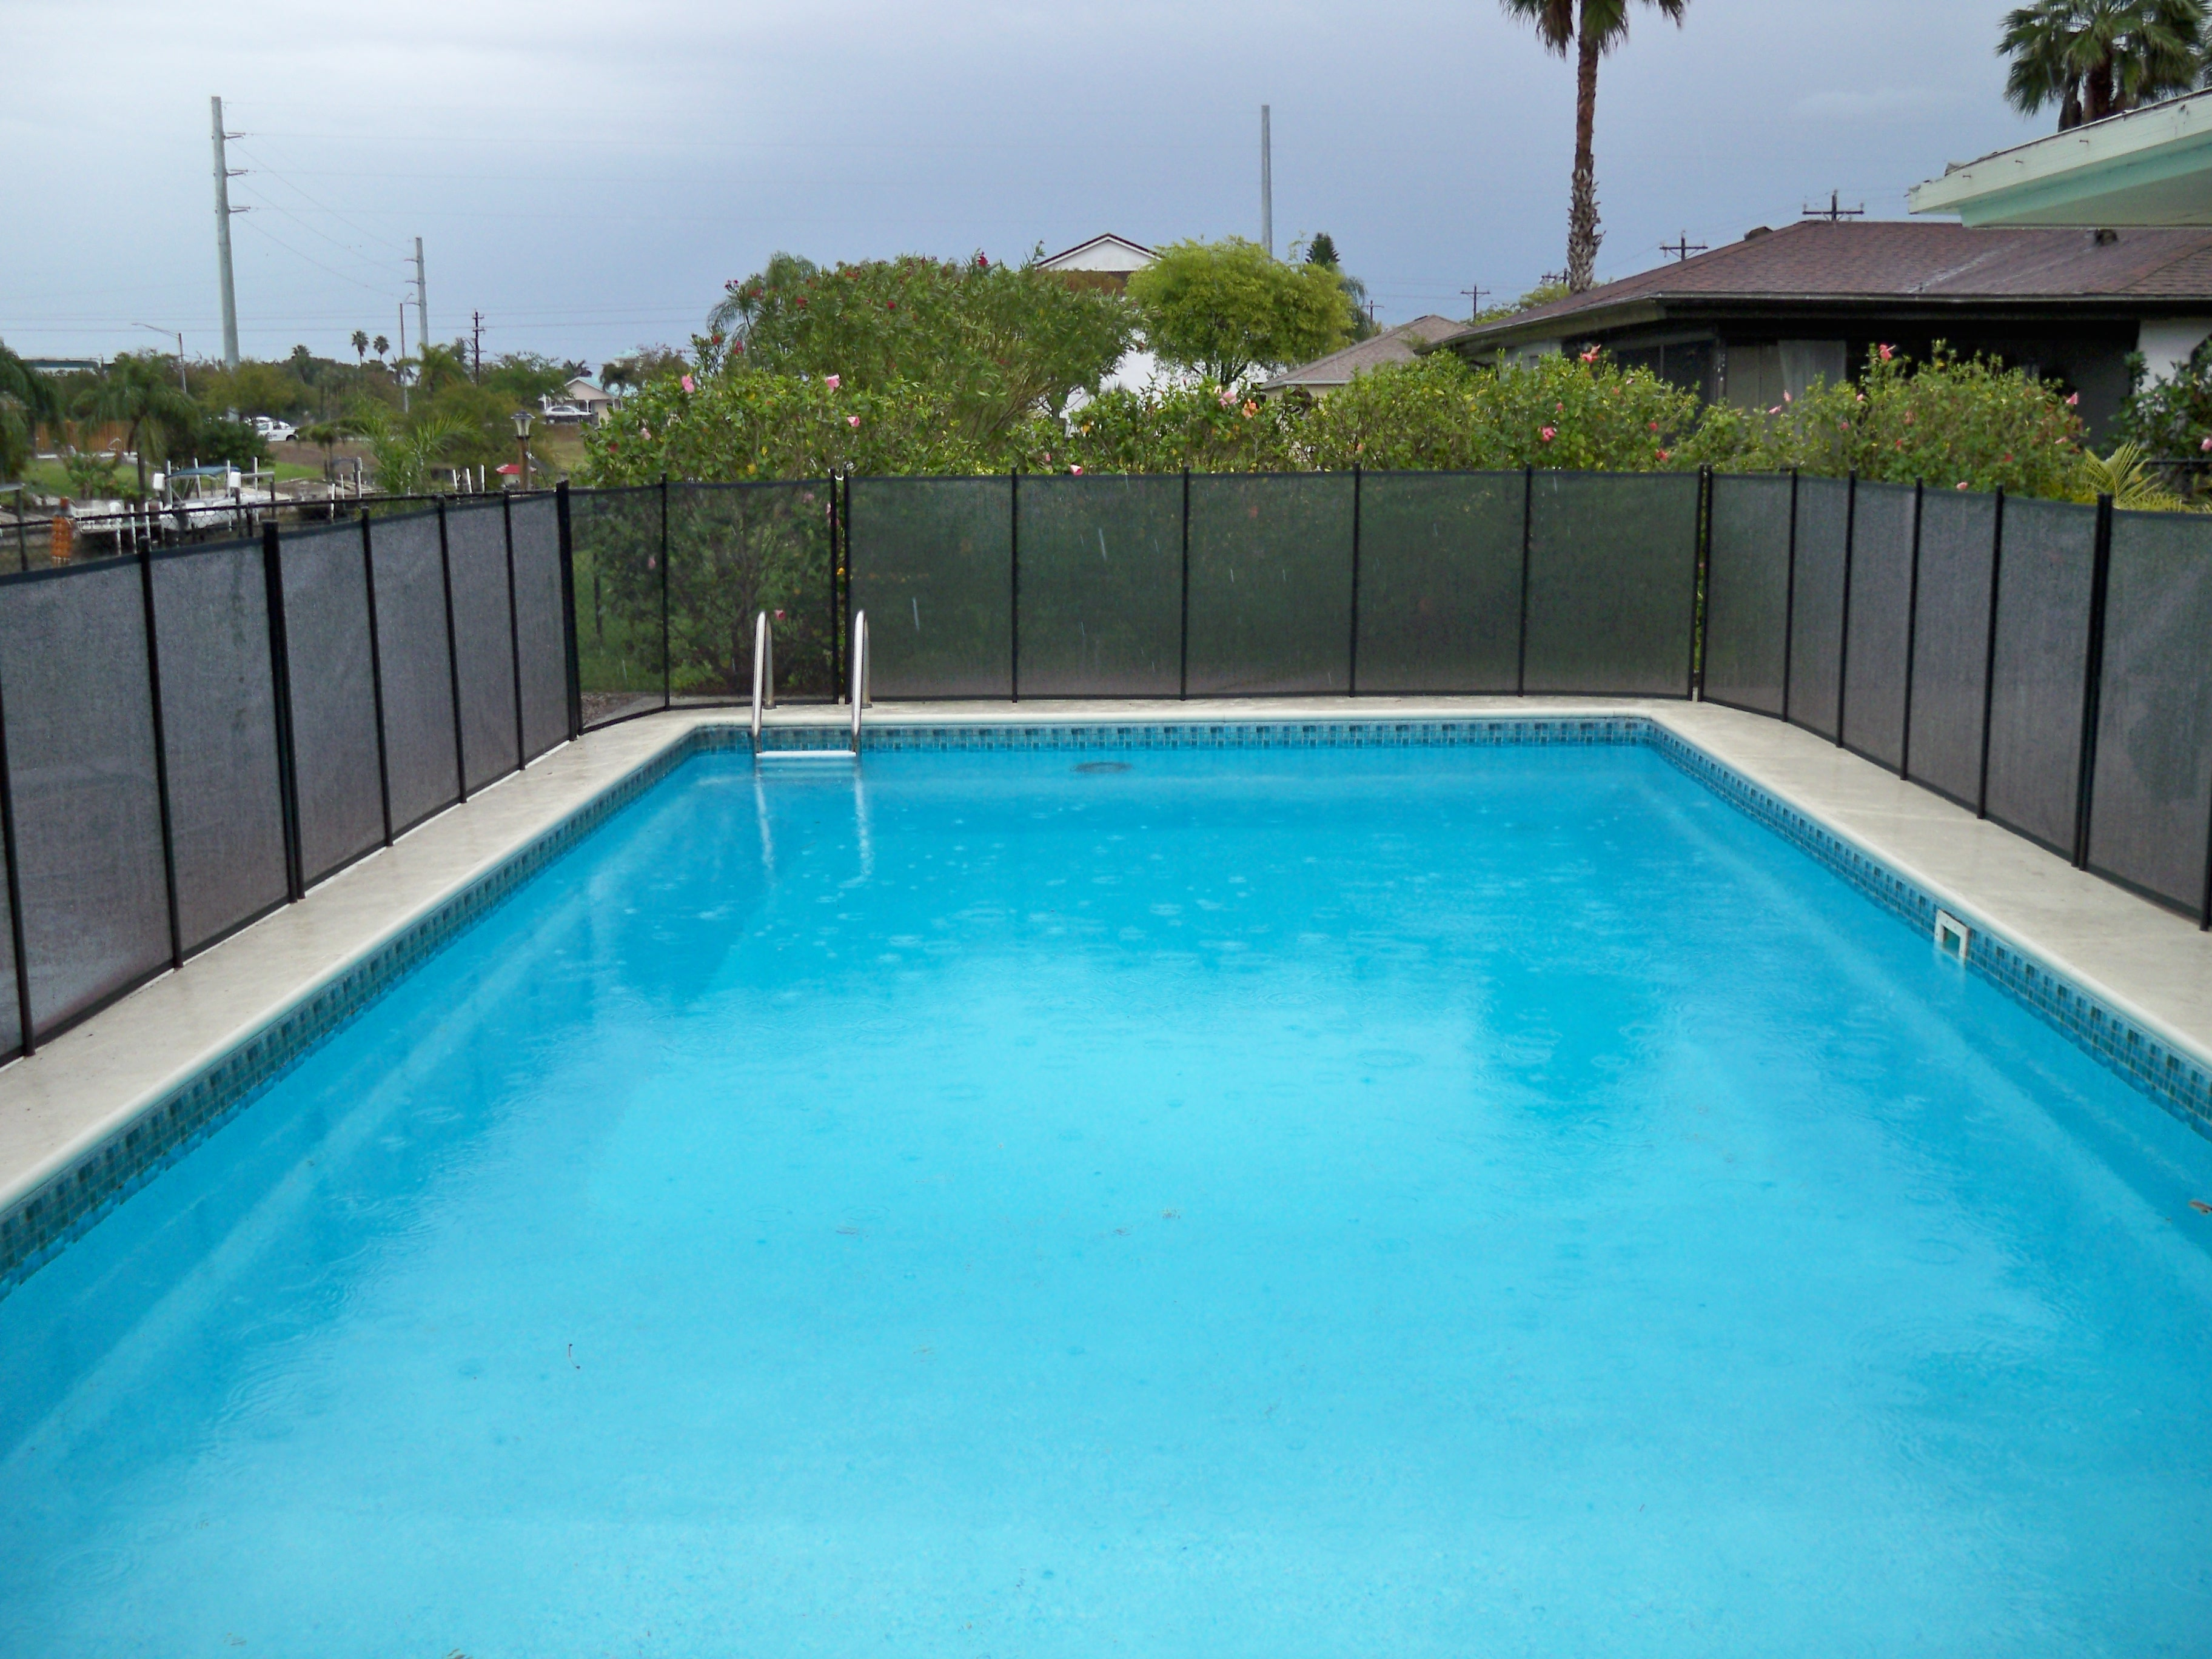 Pool Fence Donation #1: The Franco Family